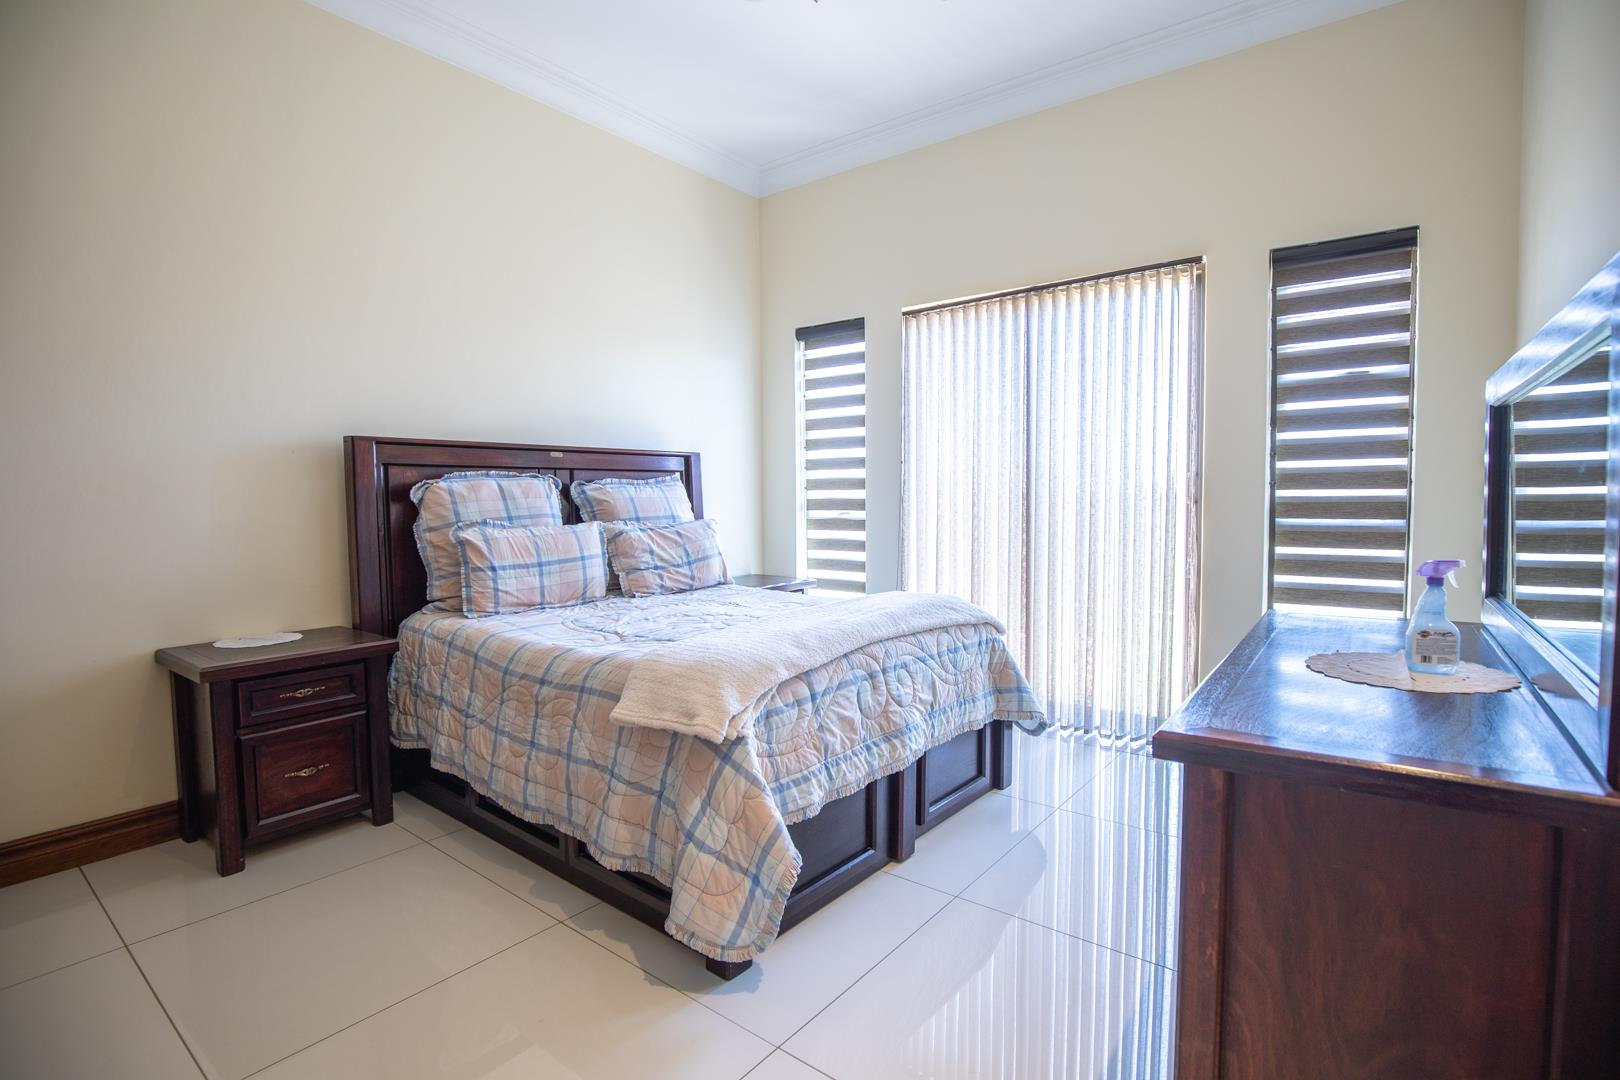 4 Bedroom House For Sale in The Hills Game Reserve Estate